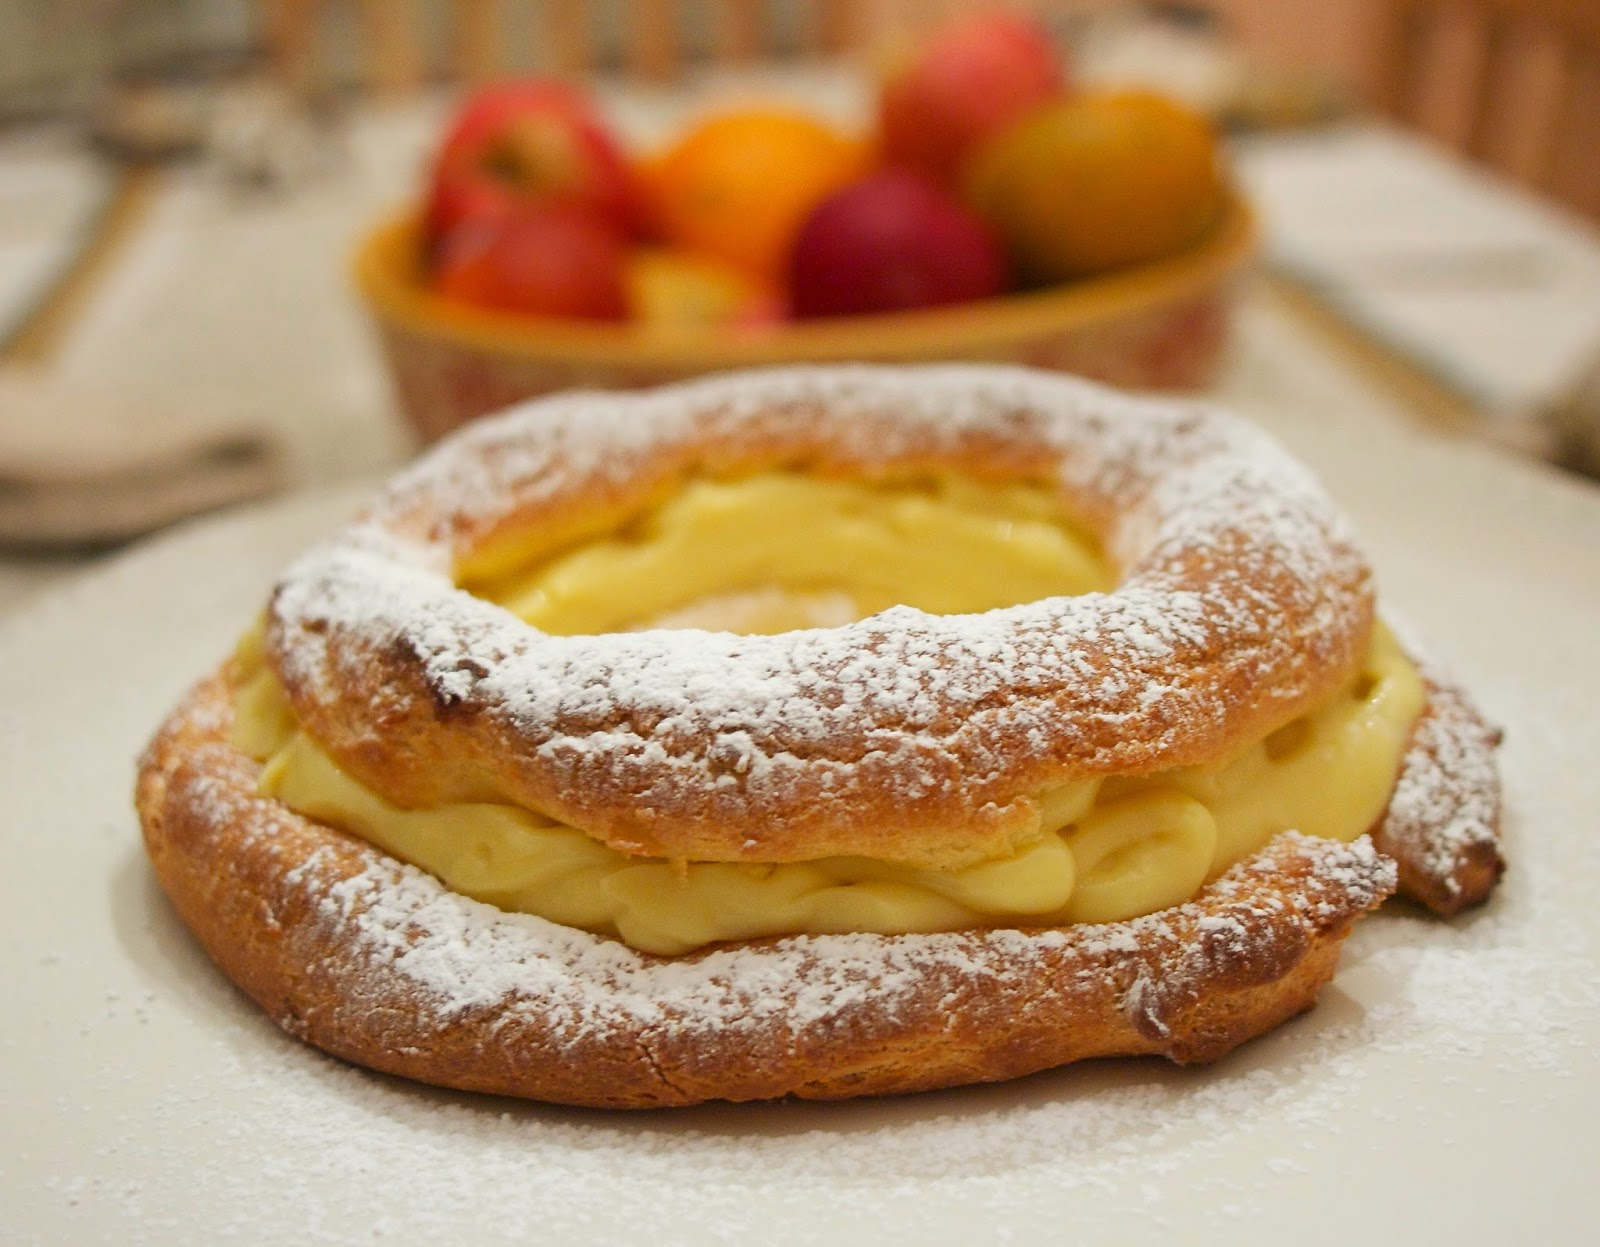 paris brest cream puff ring french fridays with dorie simple living and eating paris brest. Black Bedroom Furniture Sets. Home Design Ideas